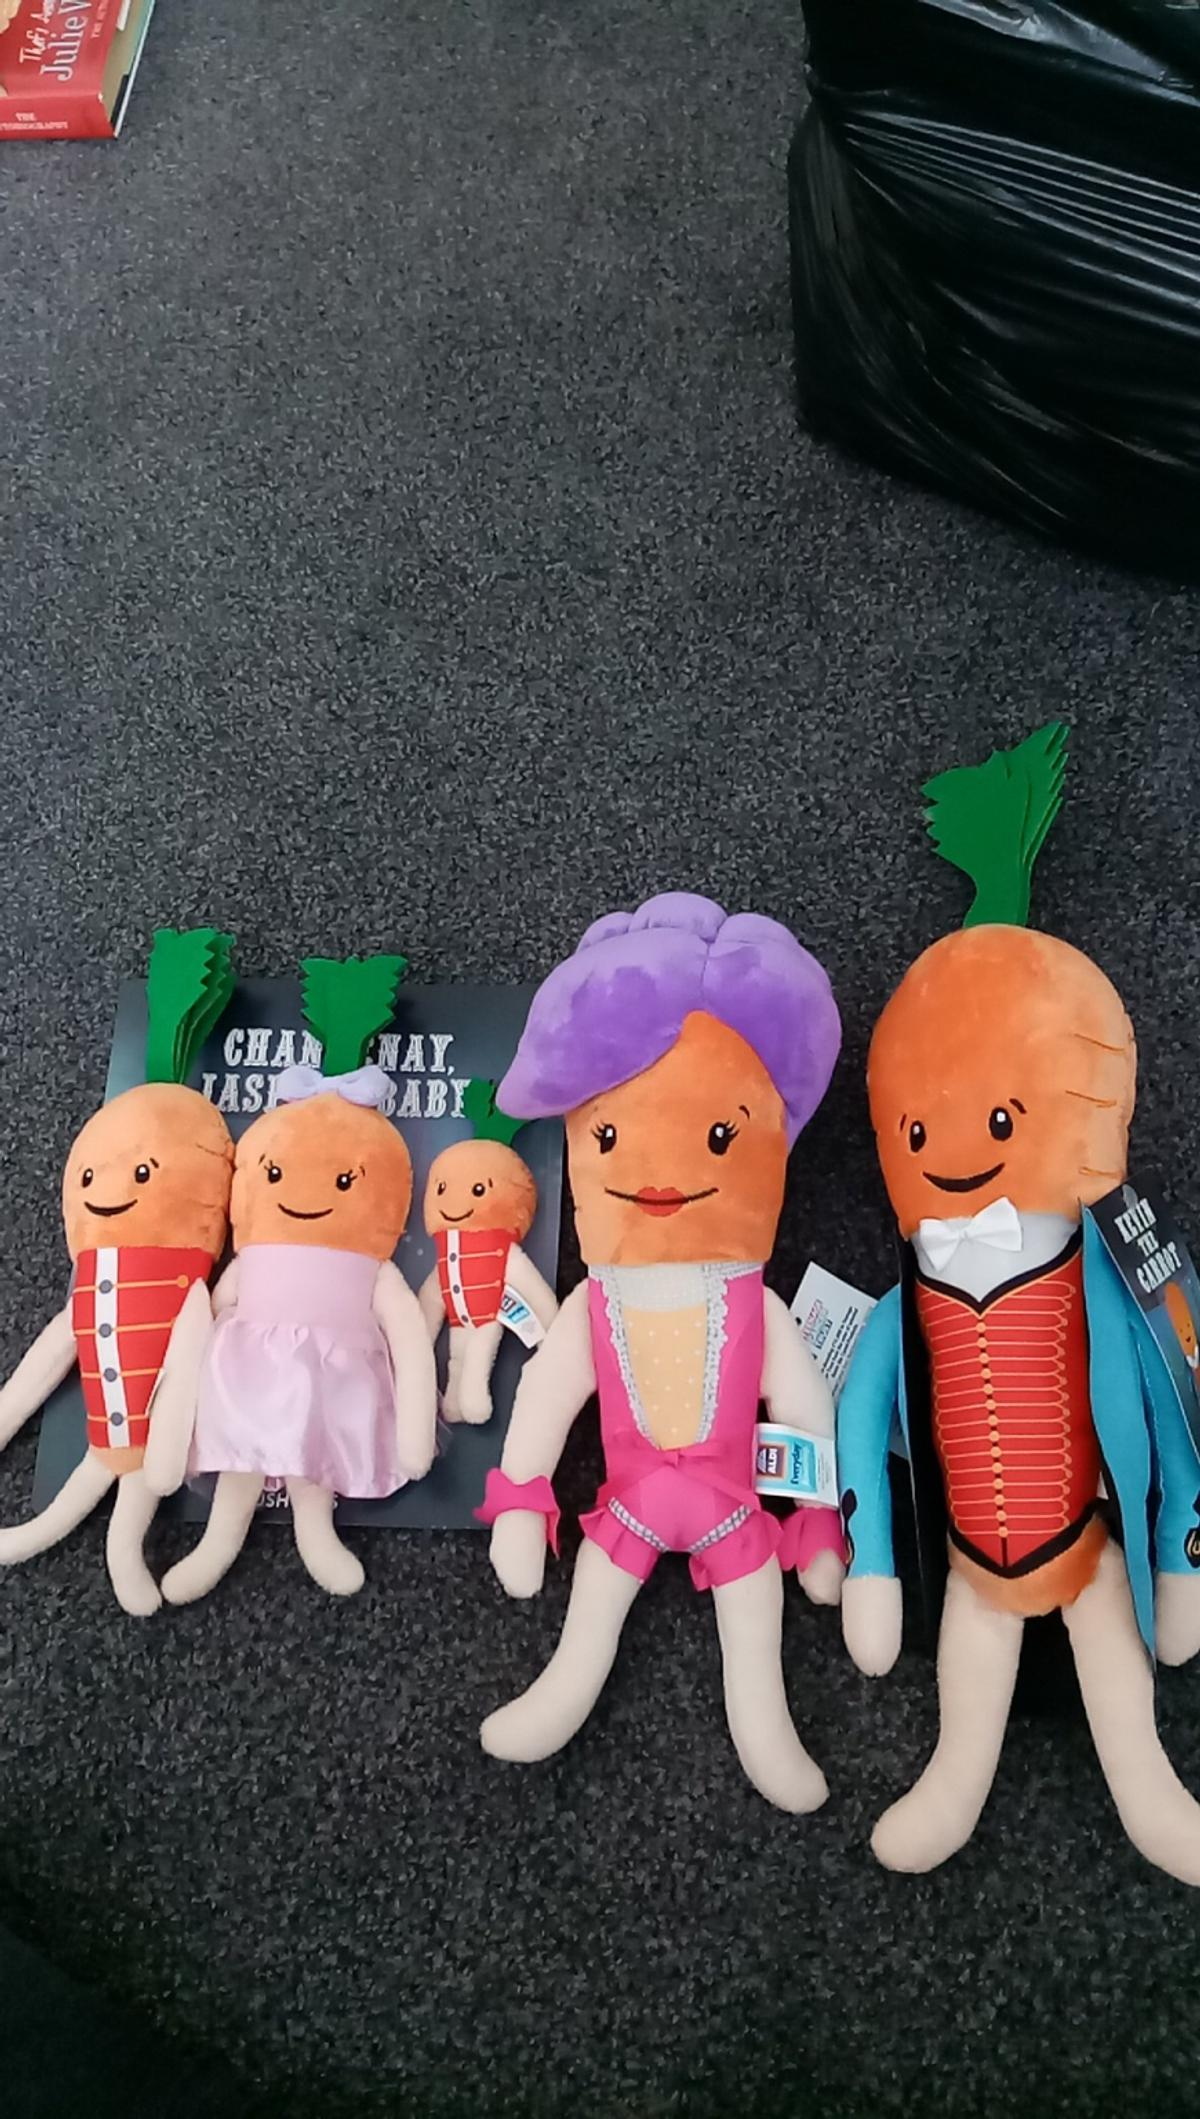 Kevin the carrot and his family from Aldi. All brand new with tags